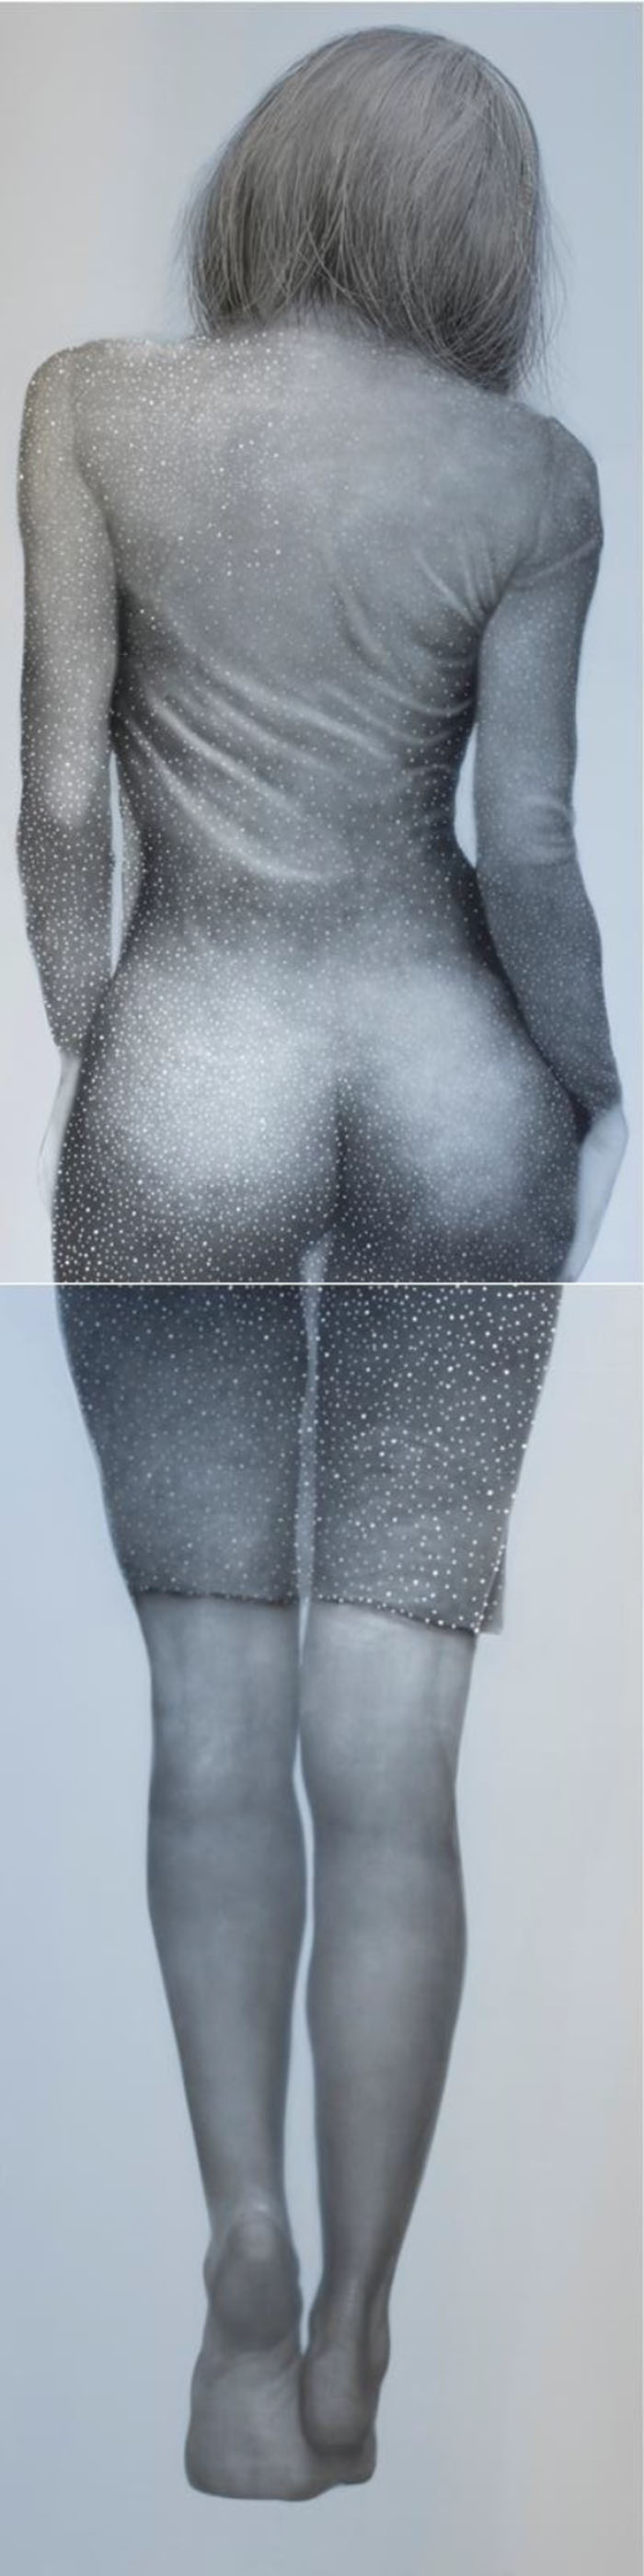 19.女人 A woman  2015   oil on aluminum   488 x 122 cm(1)